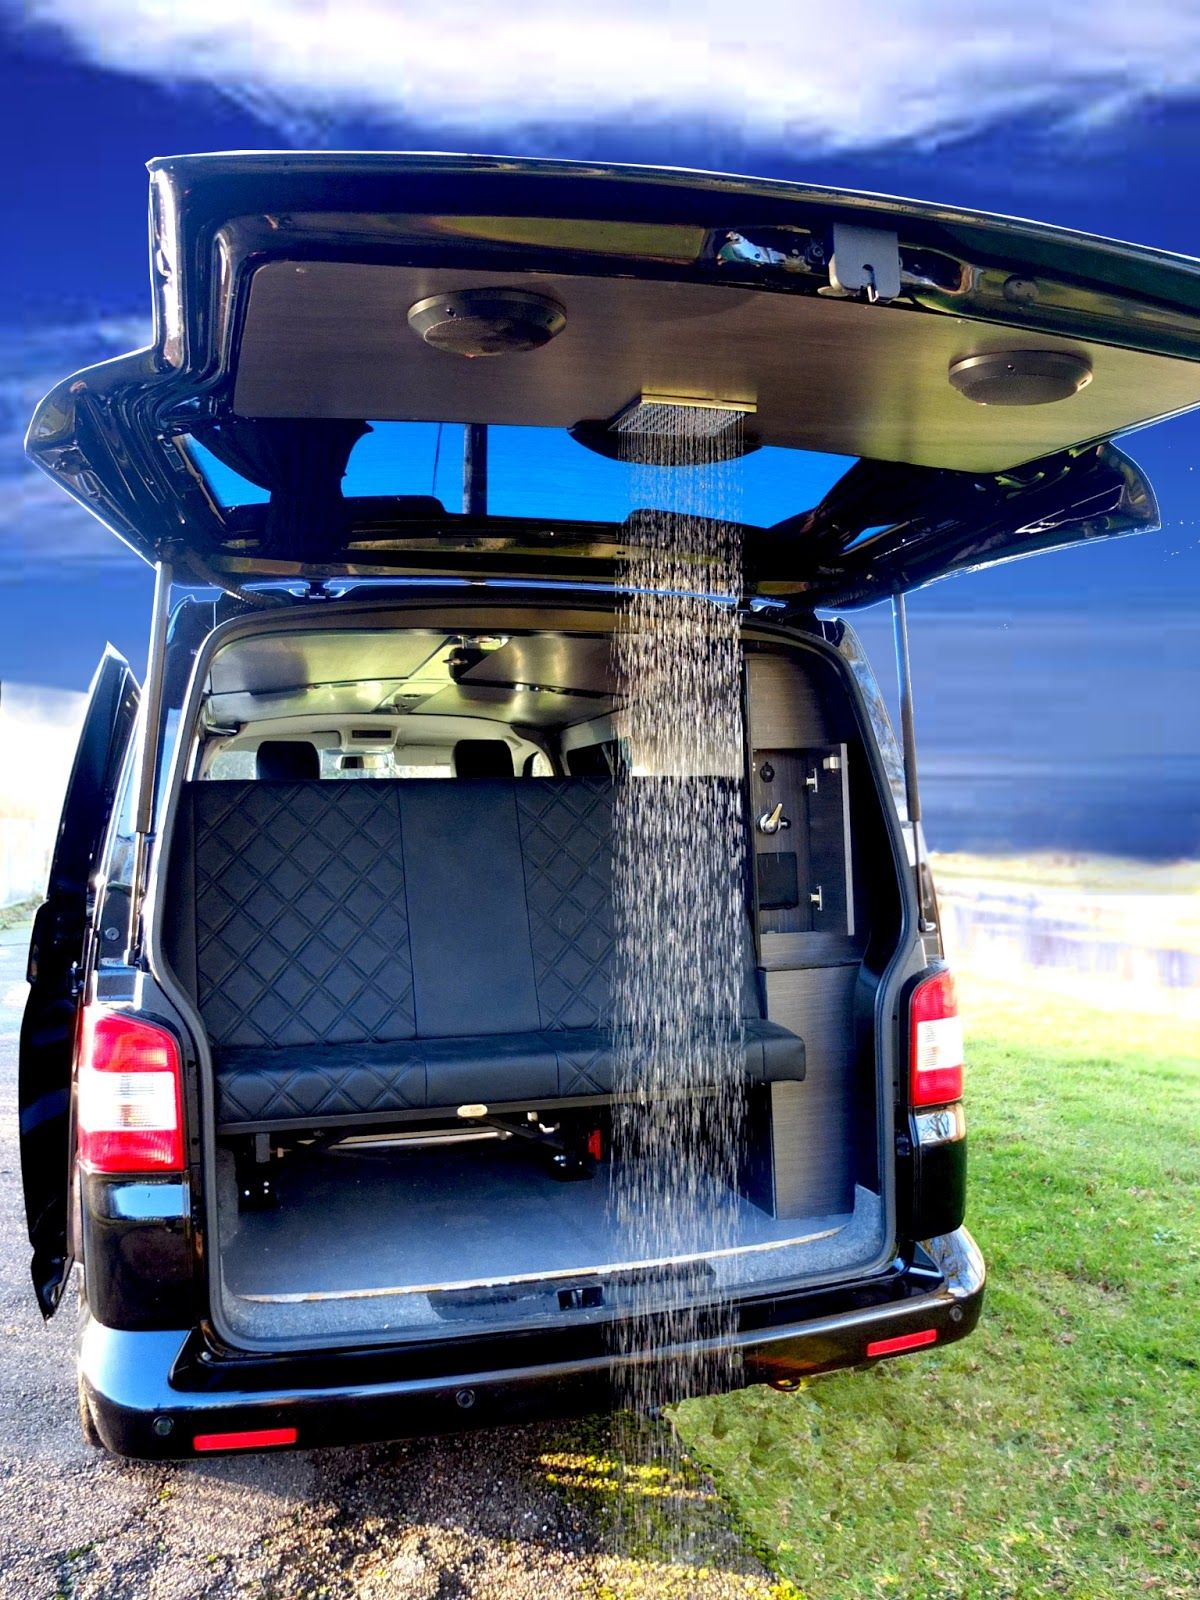 Campervan shower!? So cool and practical